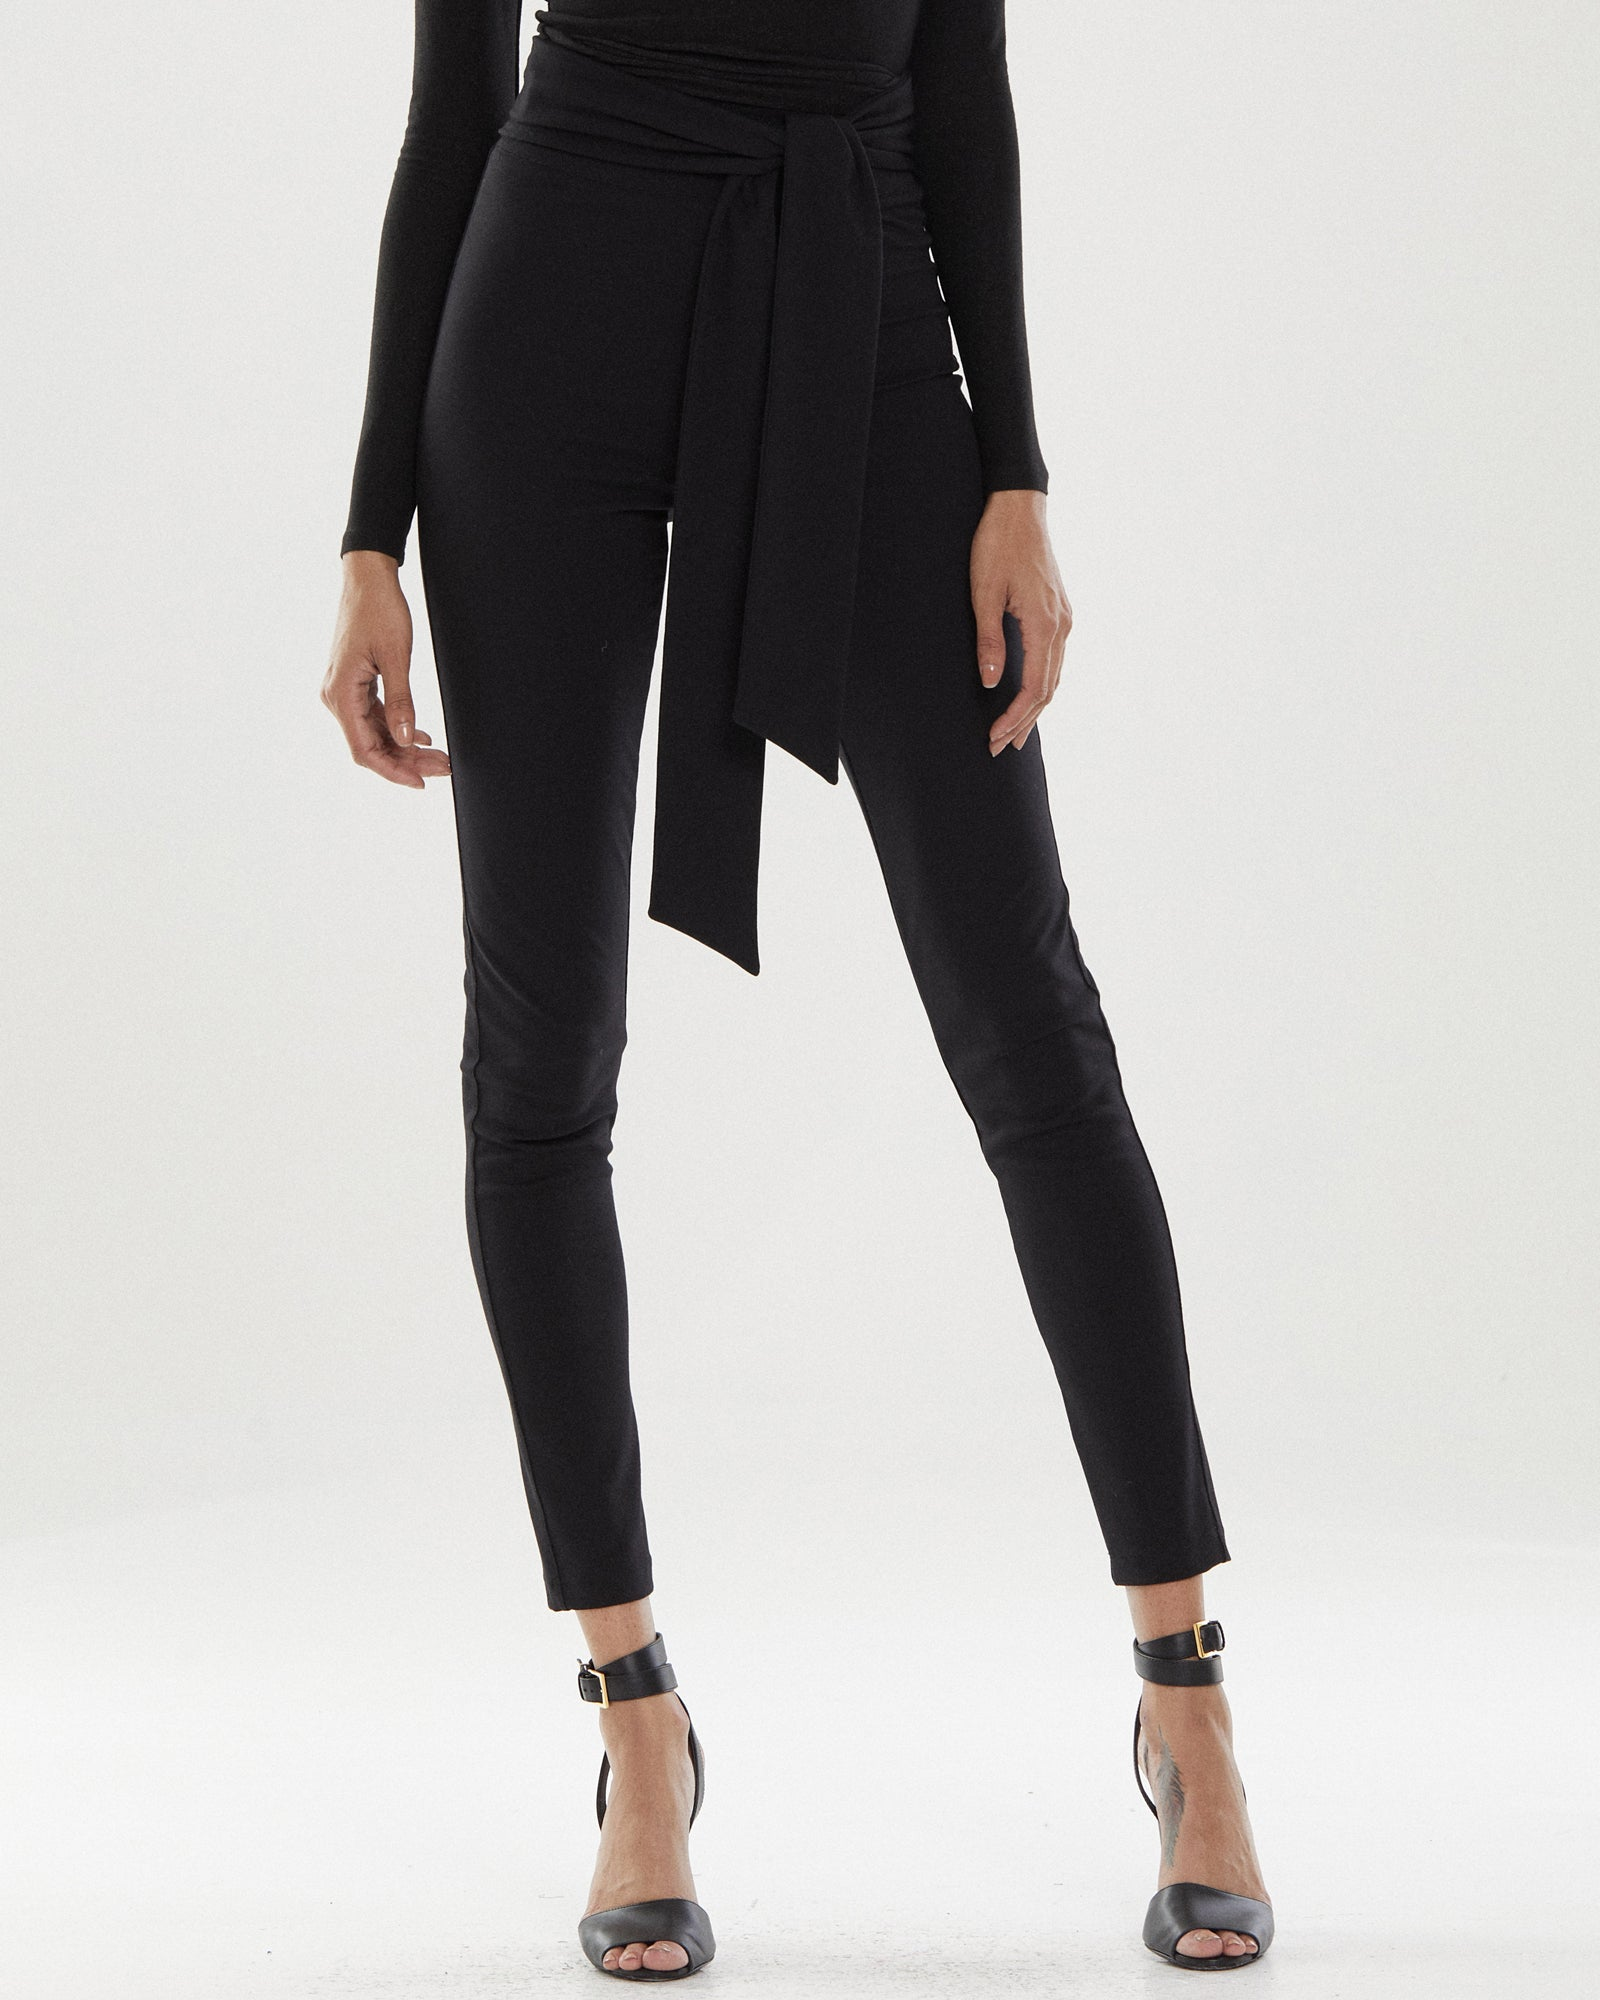 Deb High Waist Legging